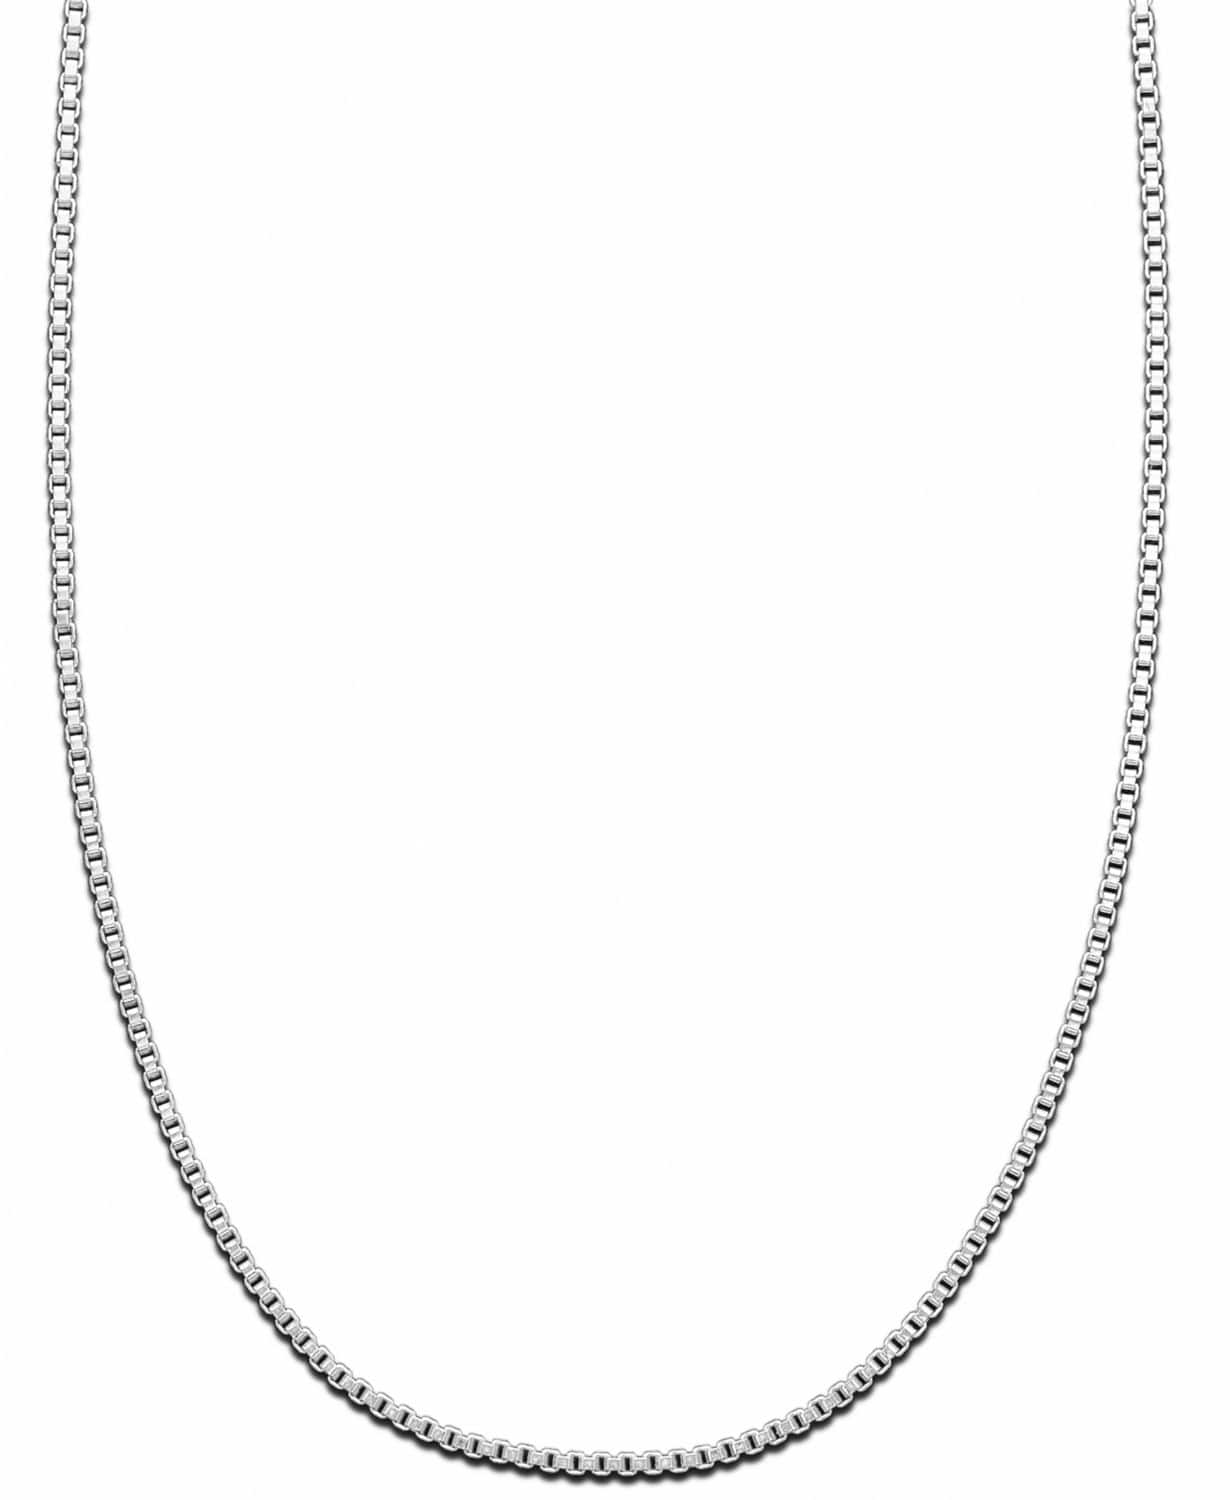 """16"""" Giani Bernini Sterling Silver Box Chain Necklace $13 at Macy's w/ Free S&H on $25+"""